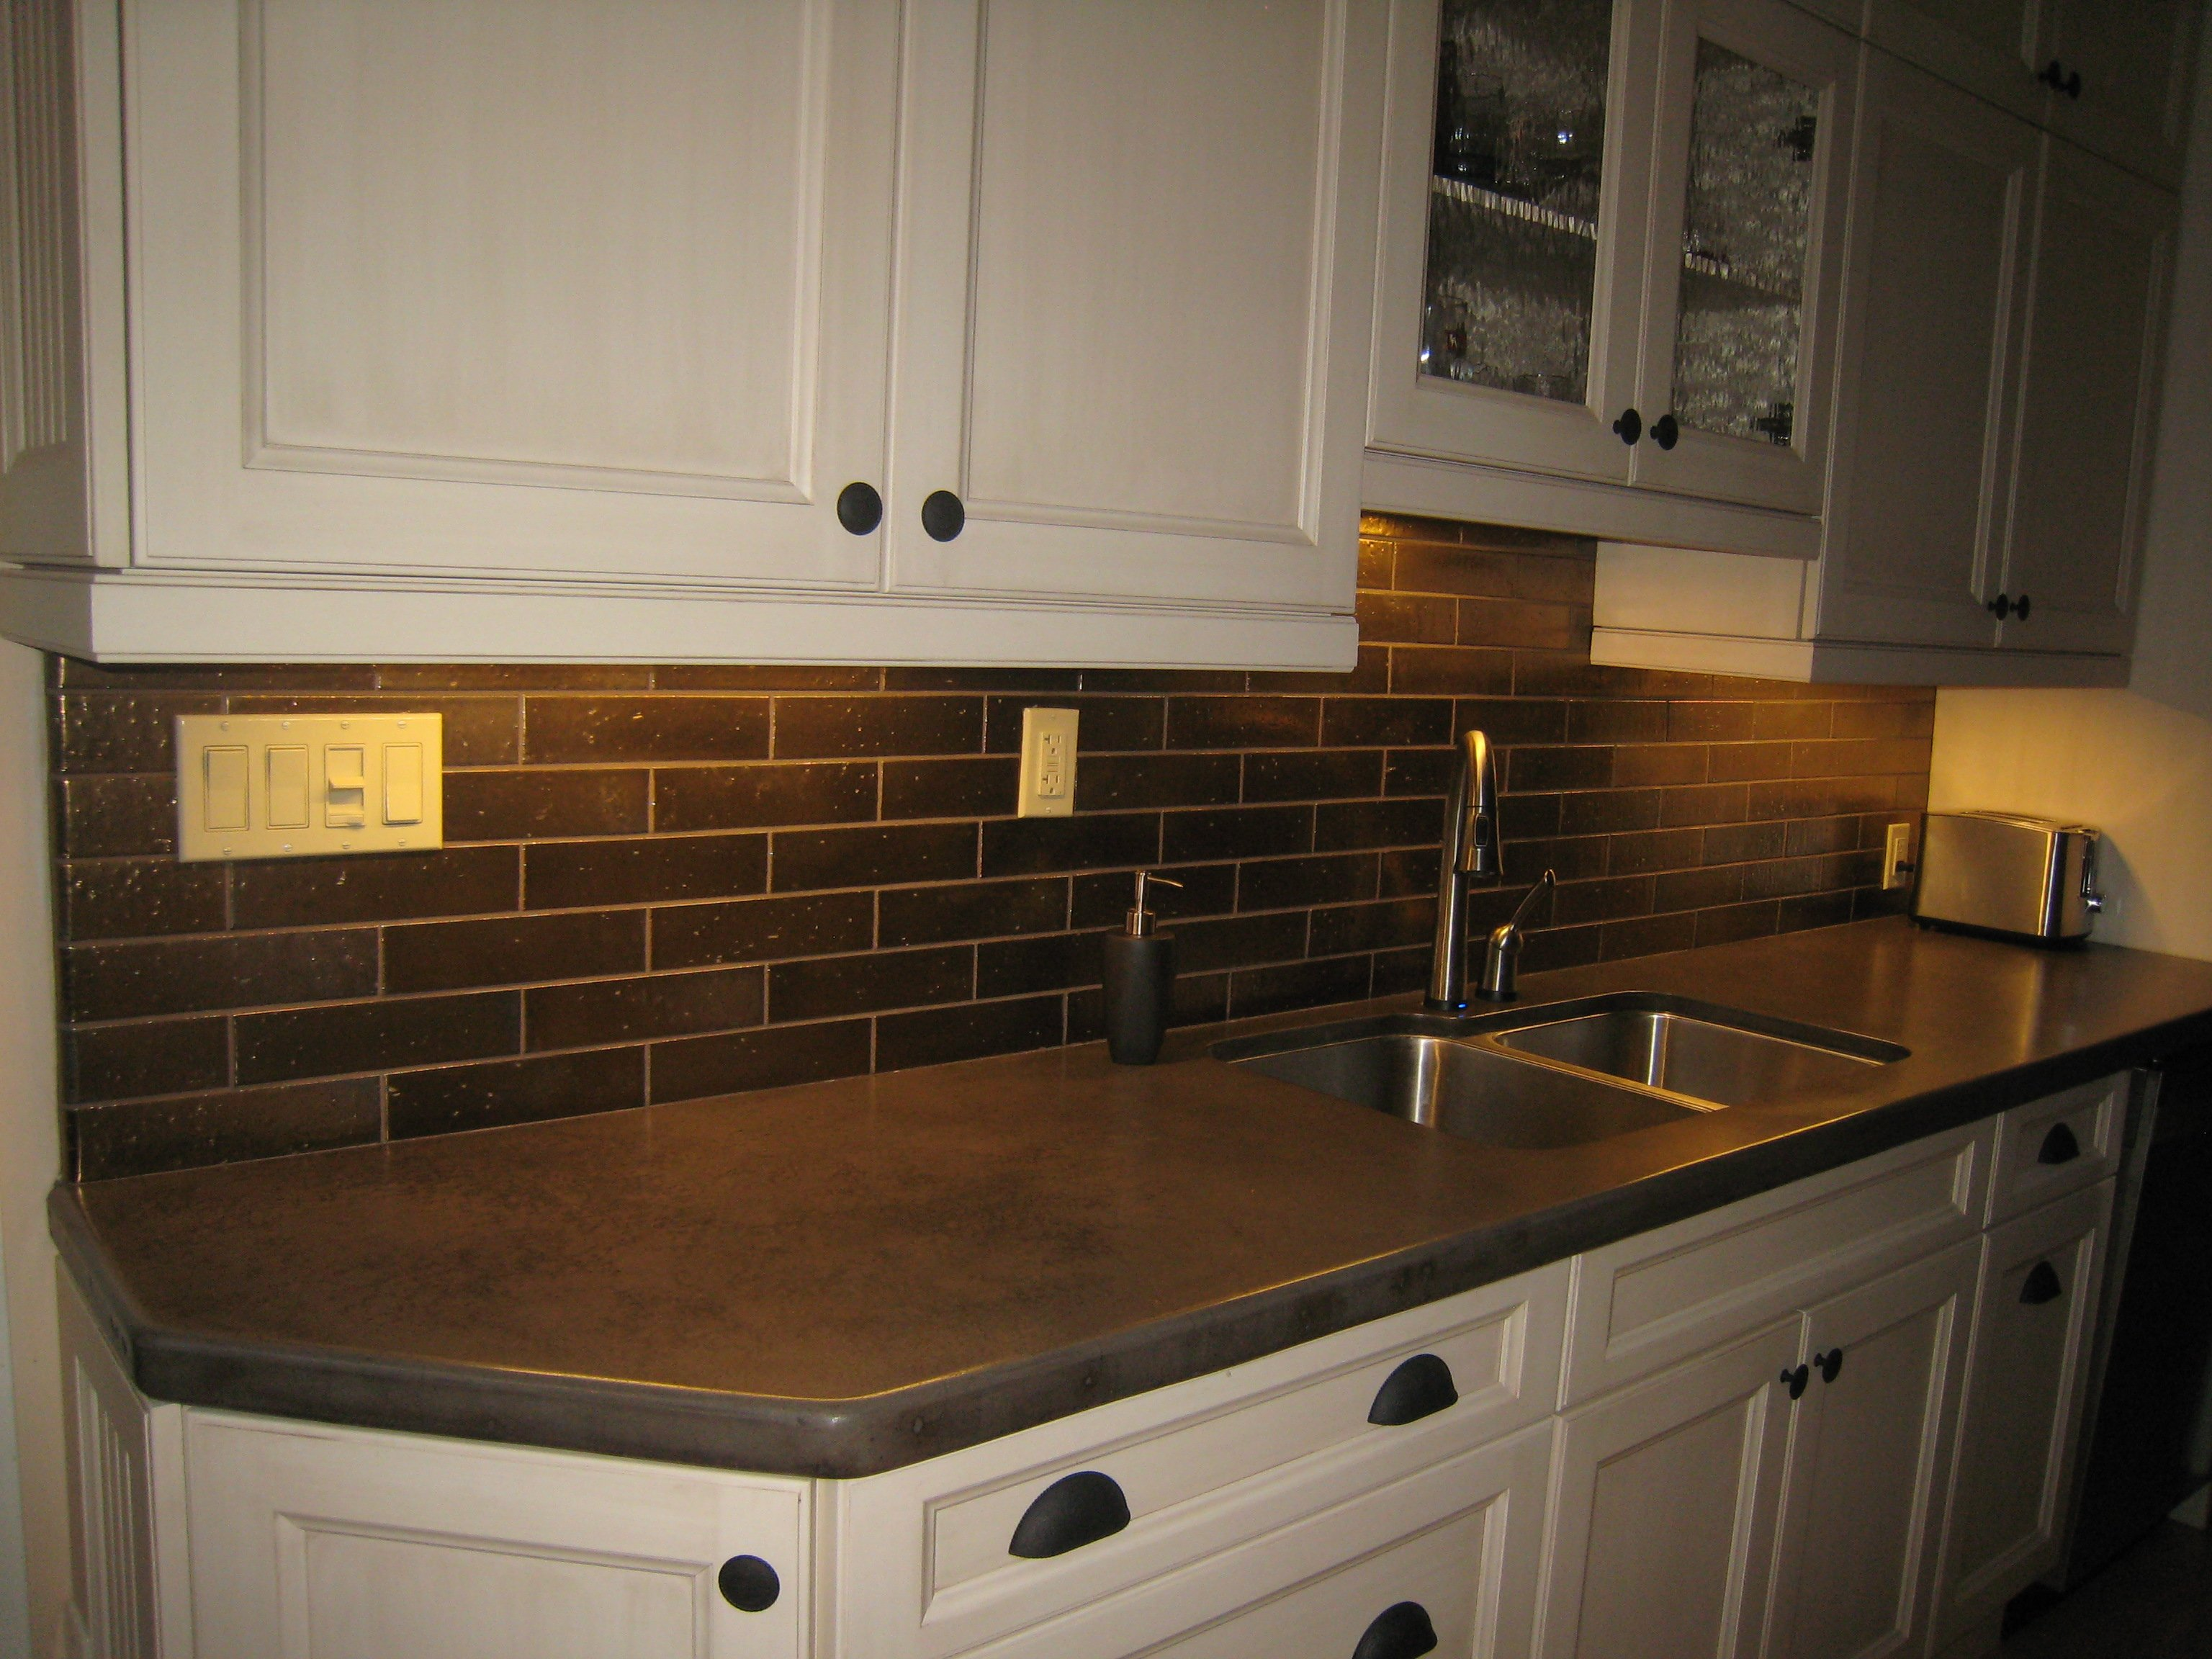 best kitchen backsplash designs. Brown Kitchen Backsplash  75 Kitchen Backsplash Ideas For 2018 Tile Glass Metal Etc